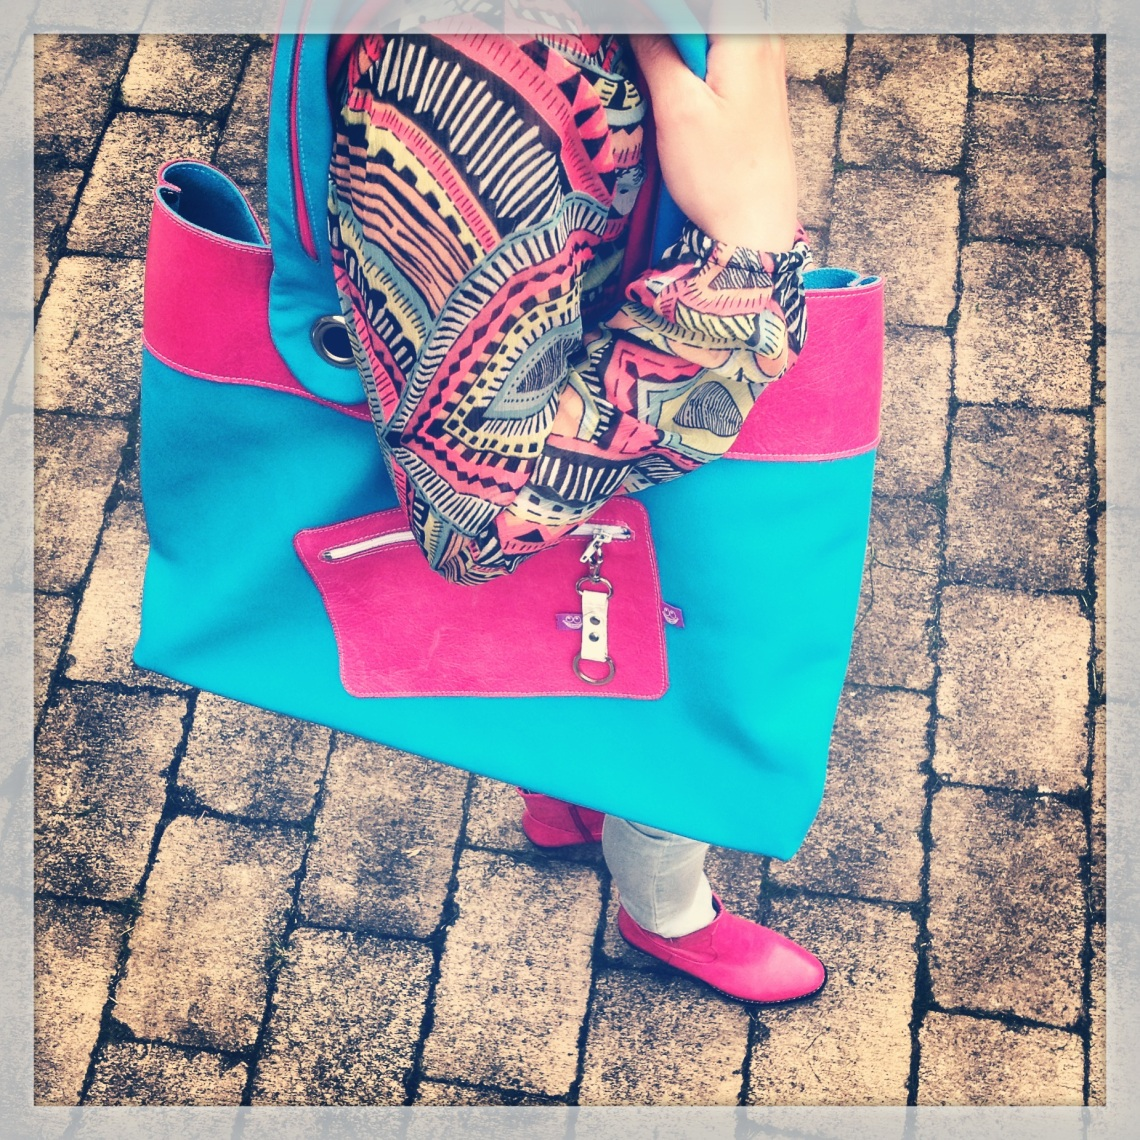 Pink and Blue leather bag in action